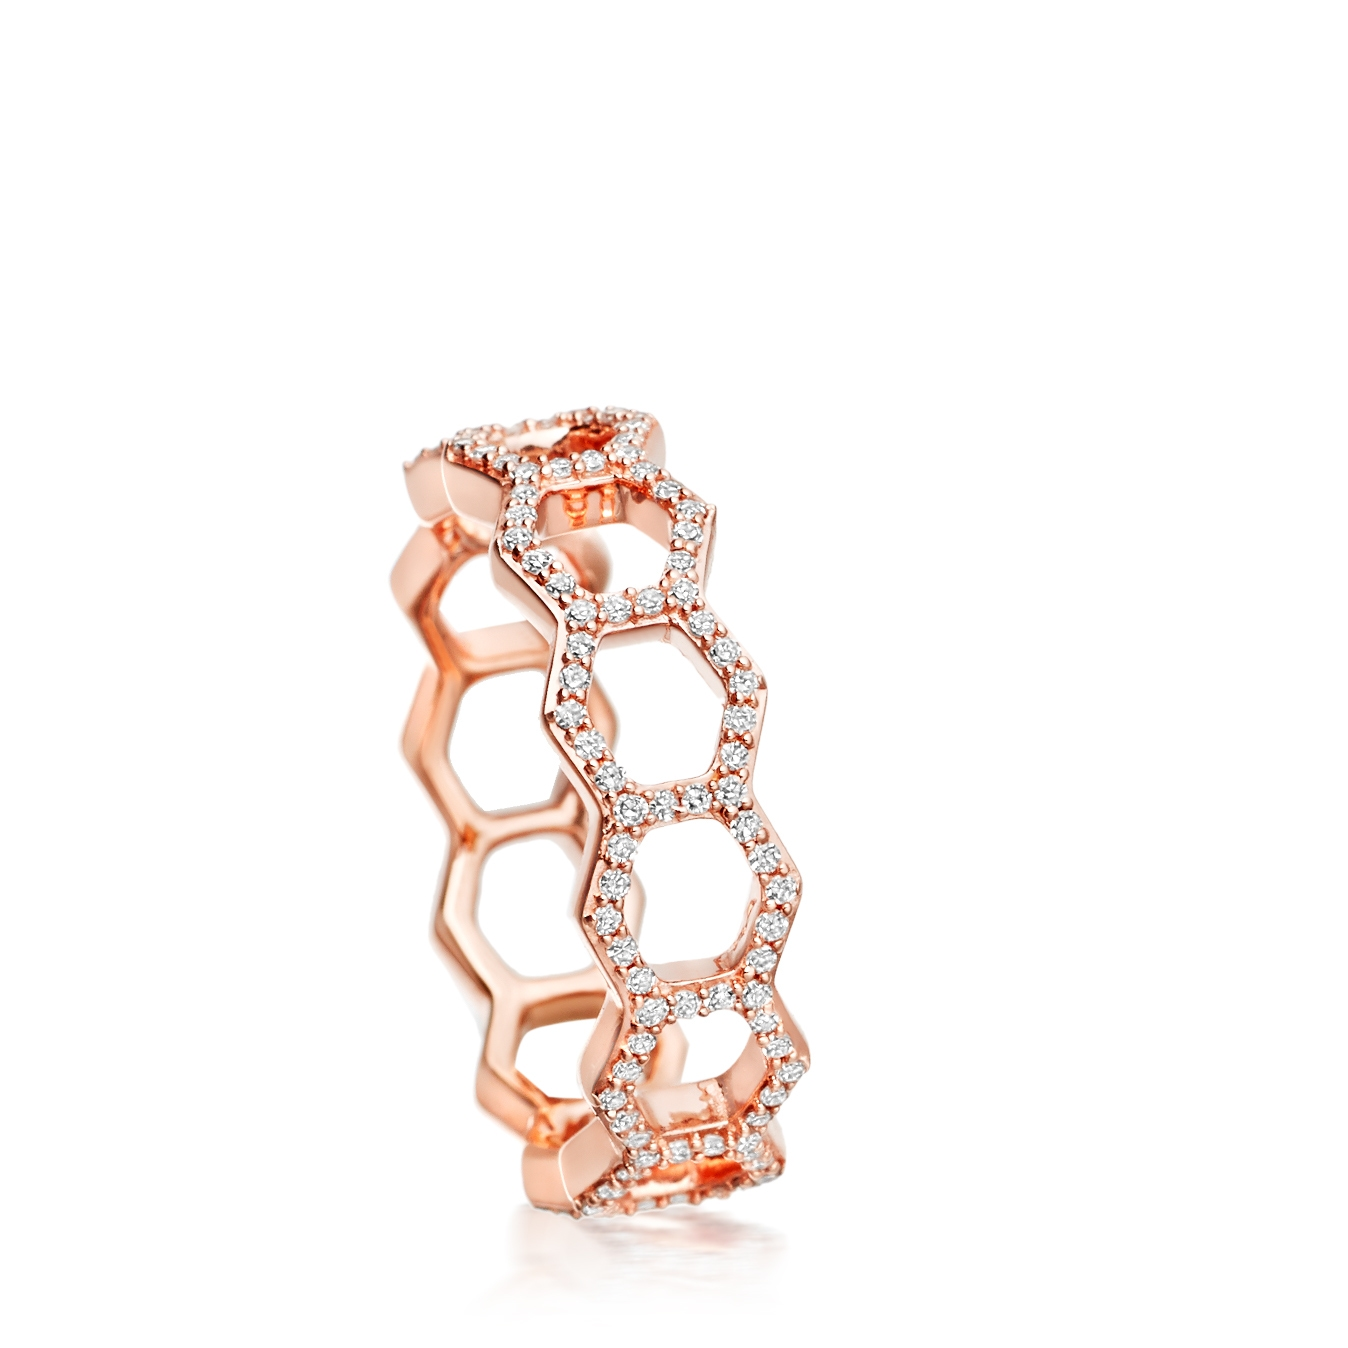 Honeycomb Diamond Ring